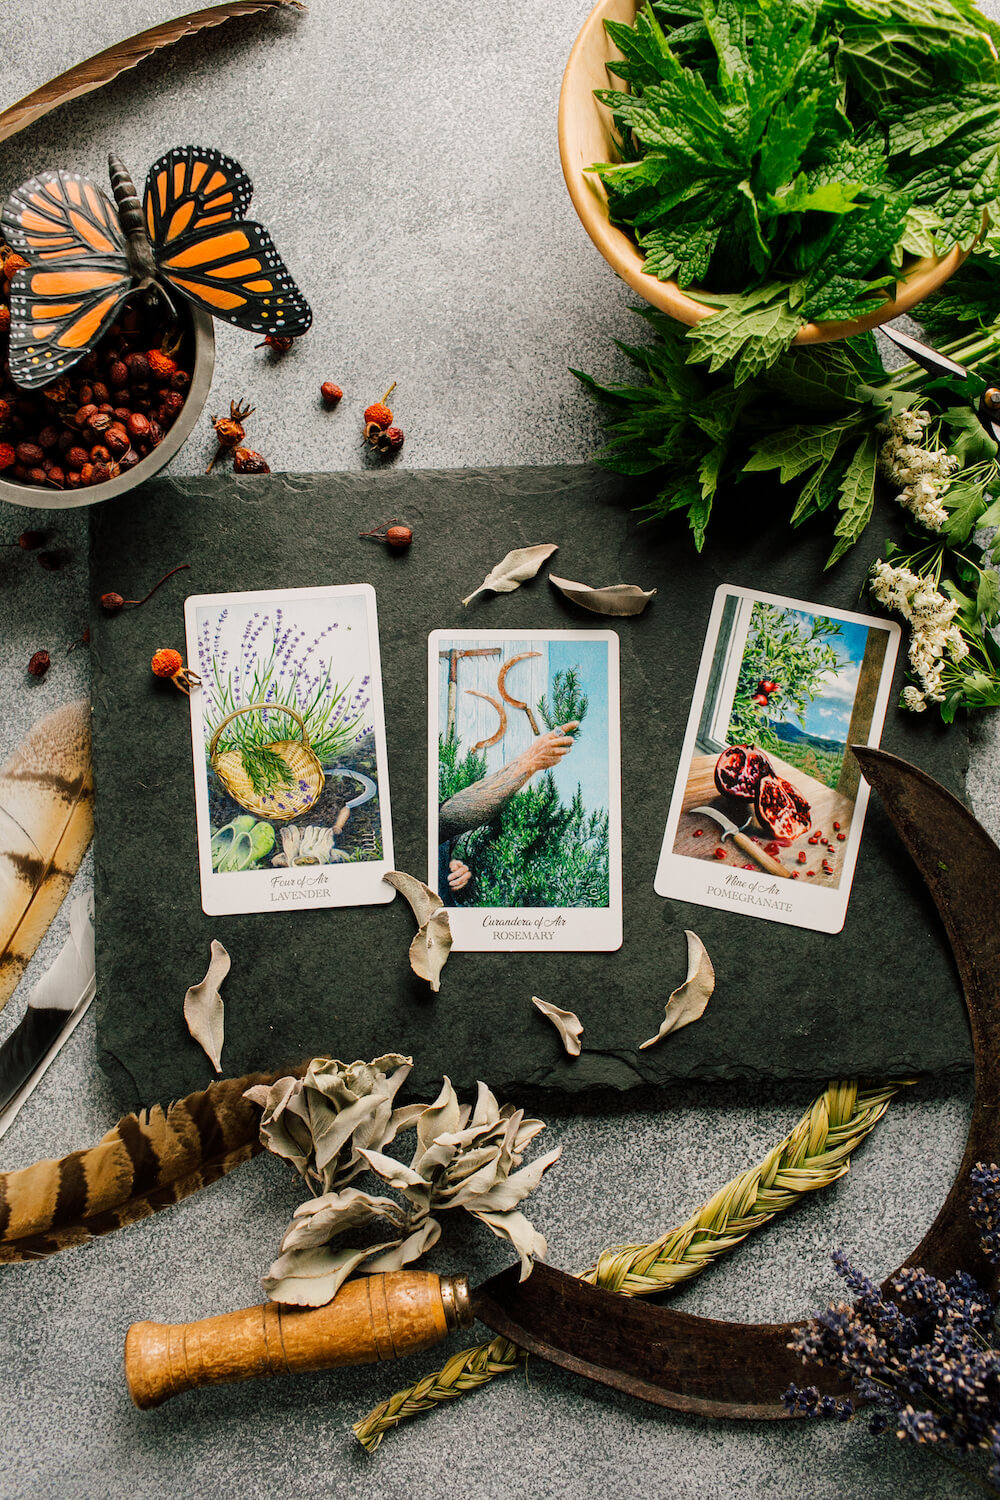 The Herbcrafter's Tarot - The Number represent how the plants contribute to an ecosysytem.